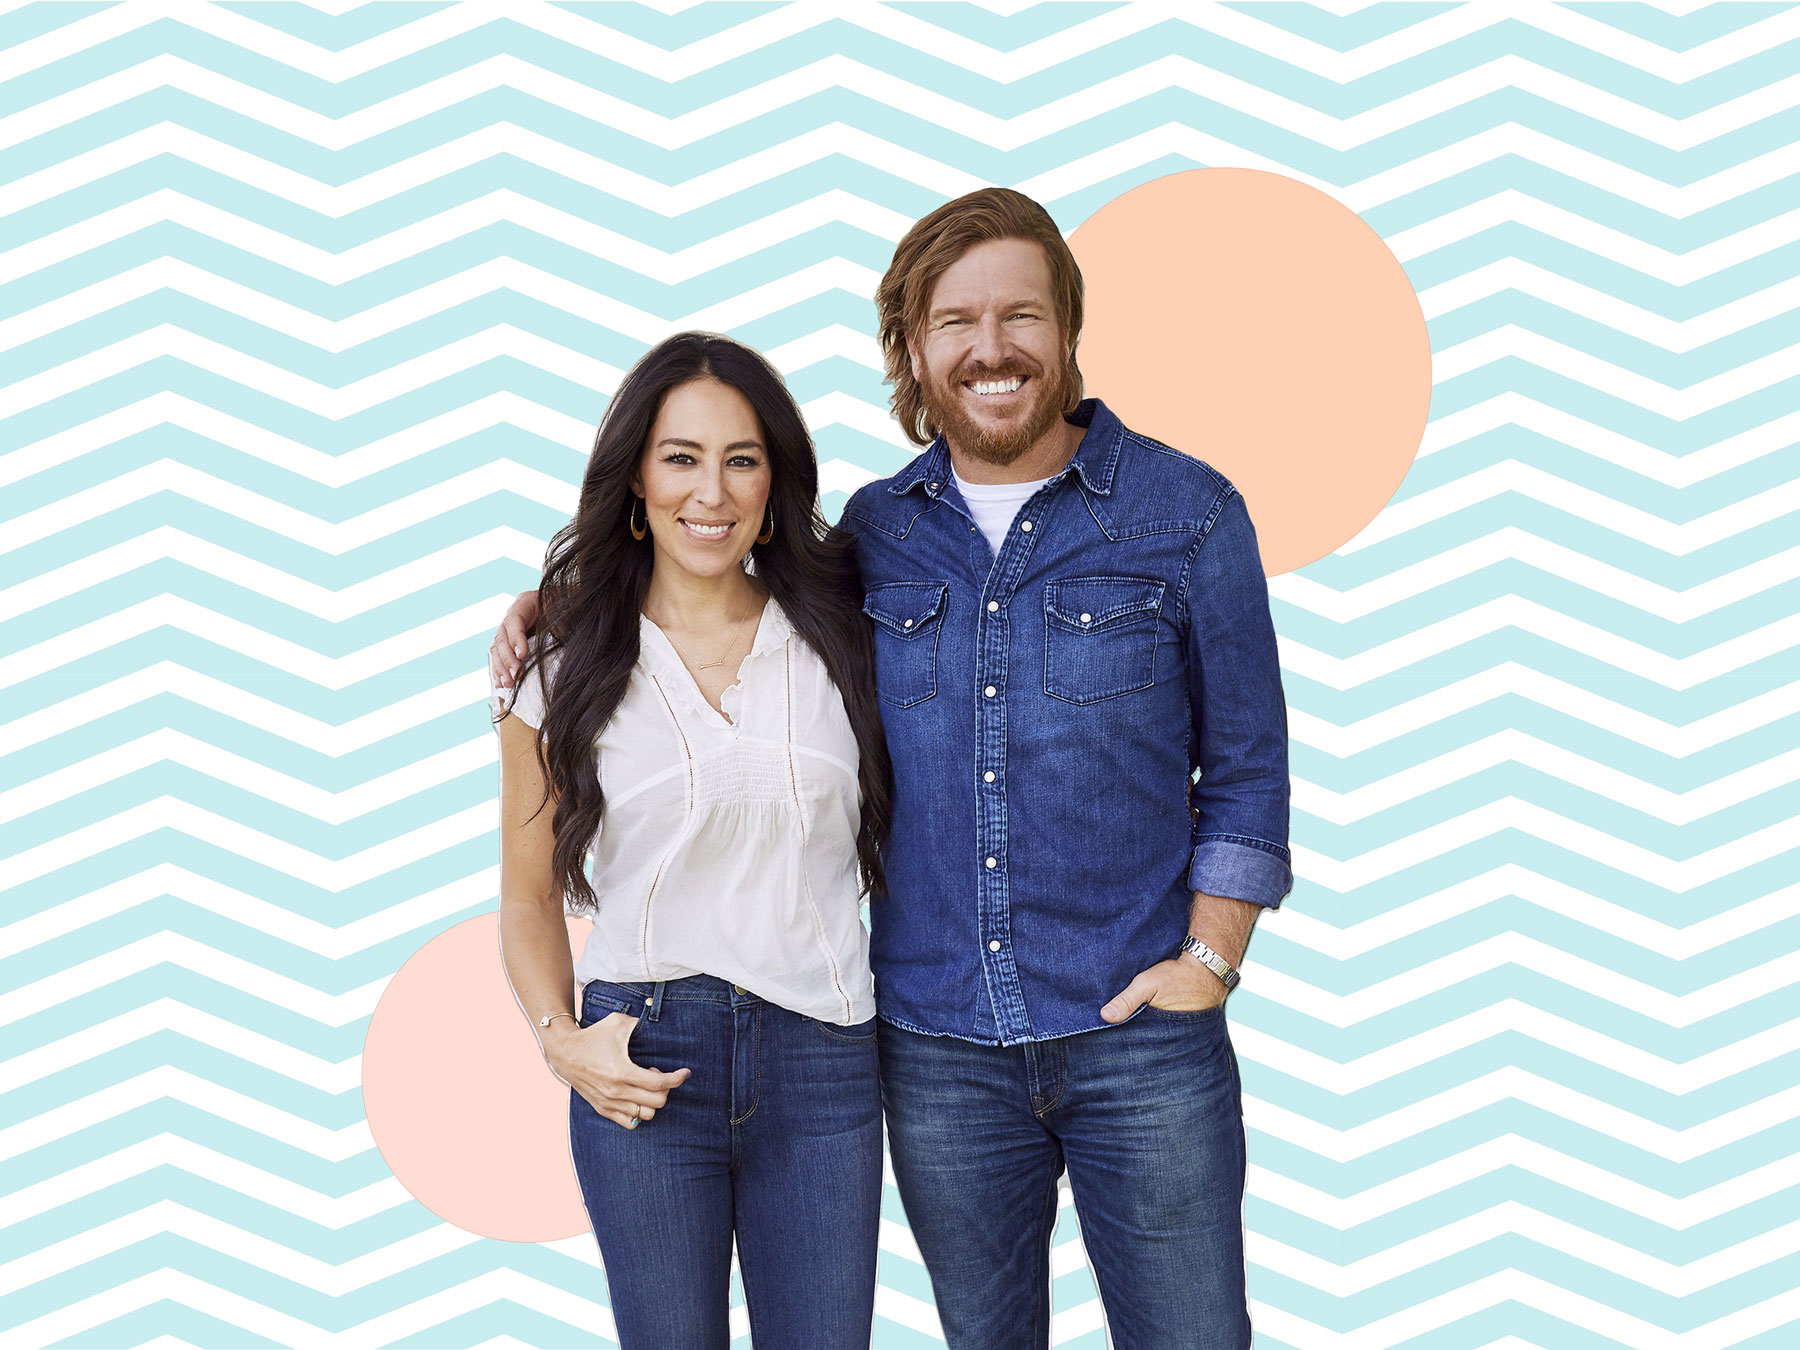 Chips Et Joanna Gaines how old are joanna gaines and chip gaines? | real simple